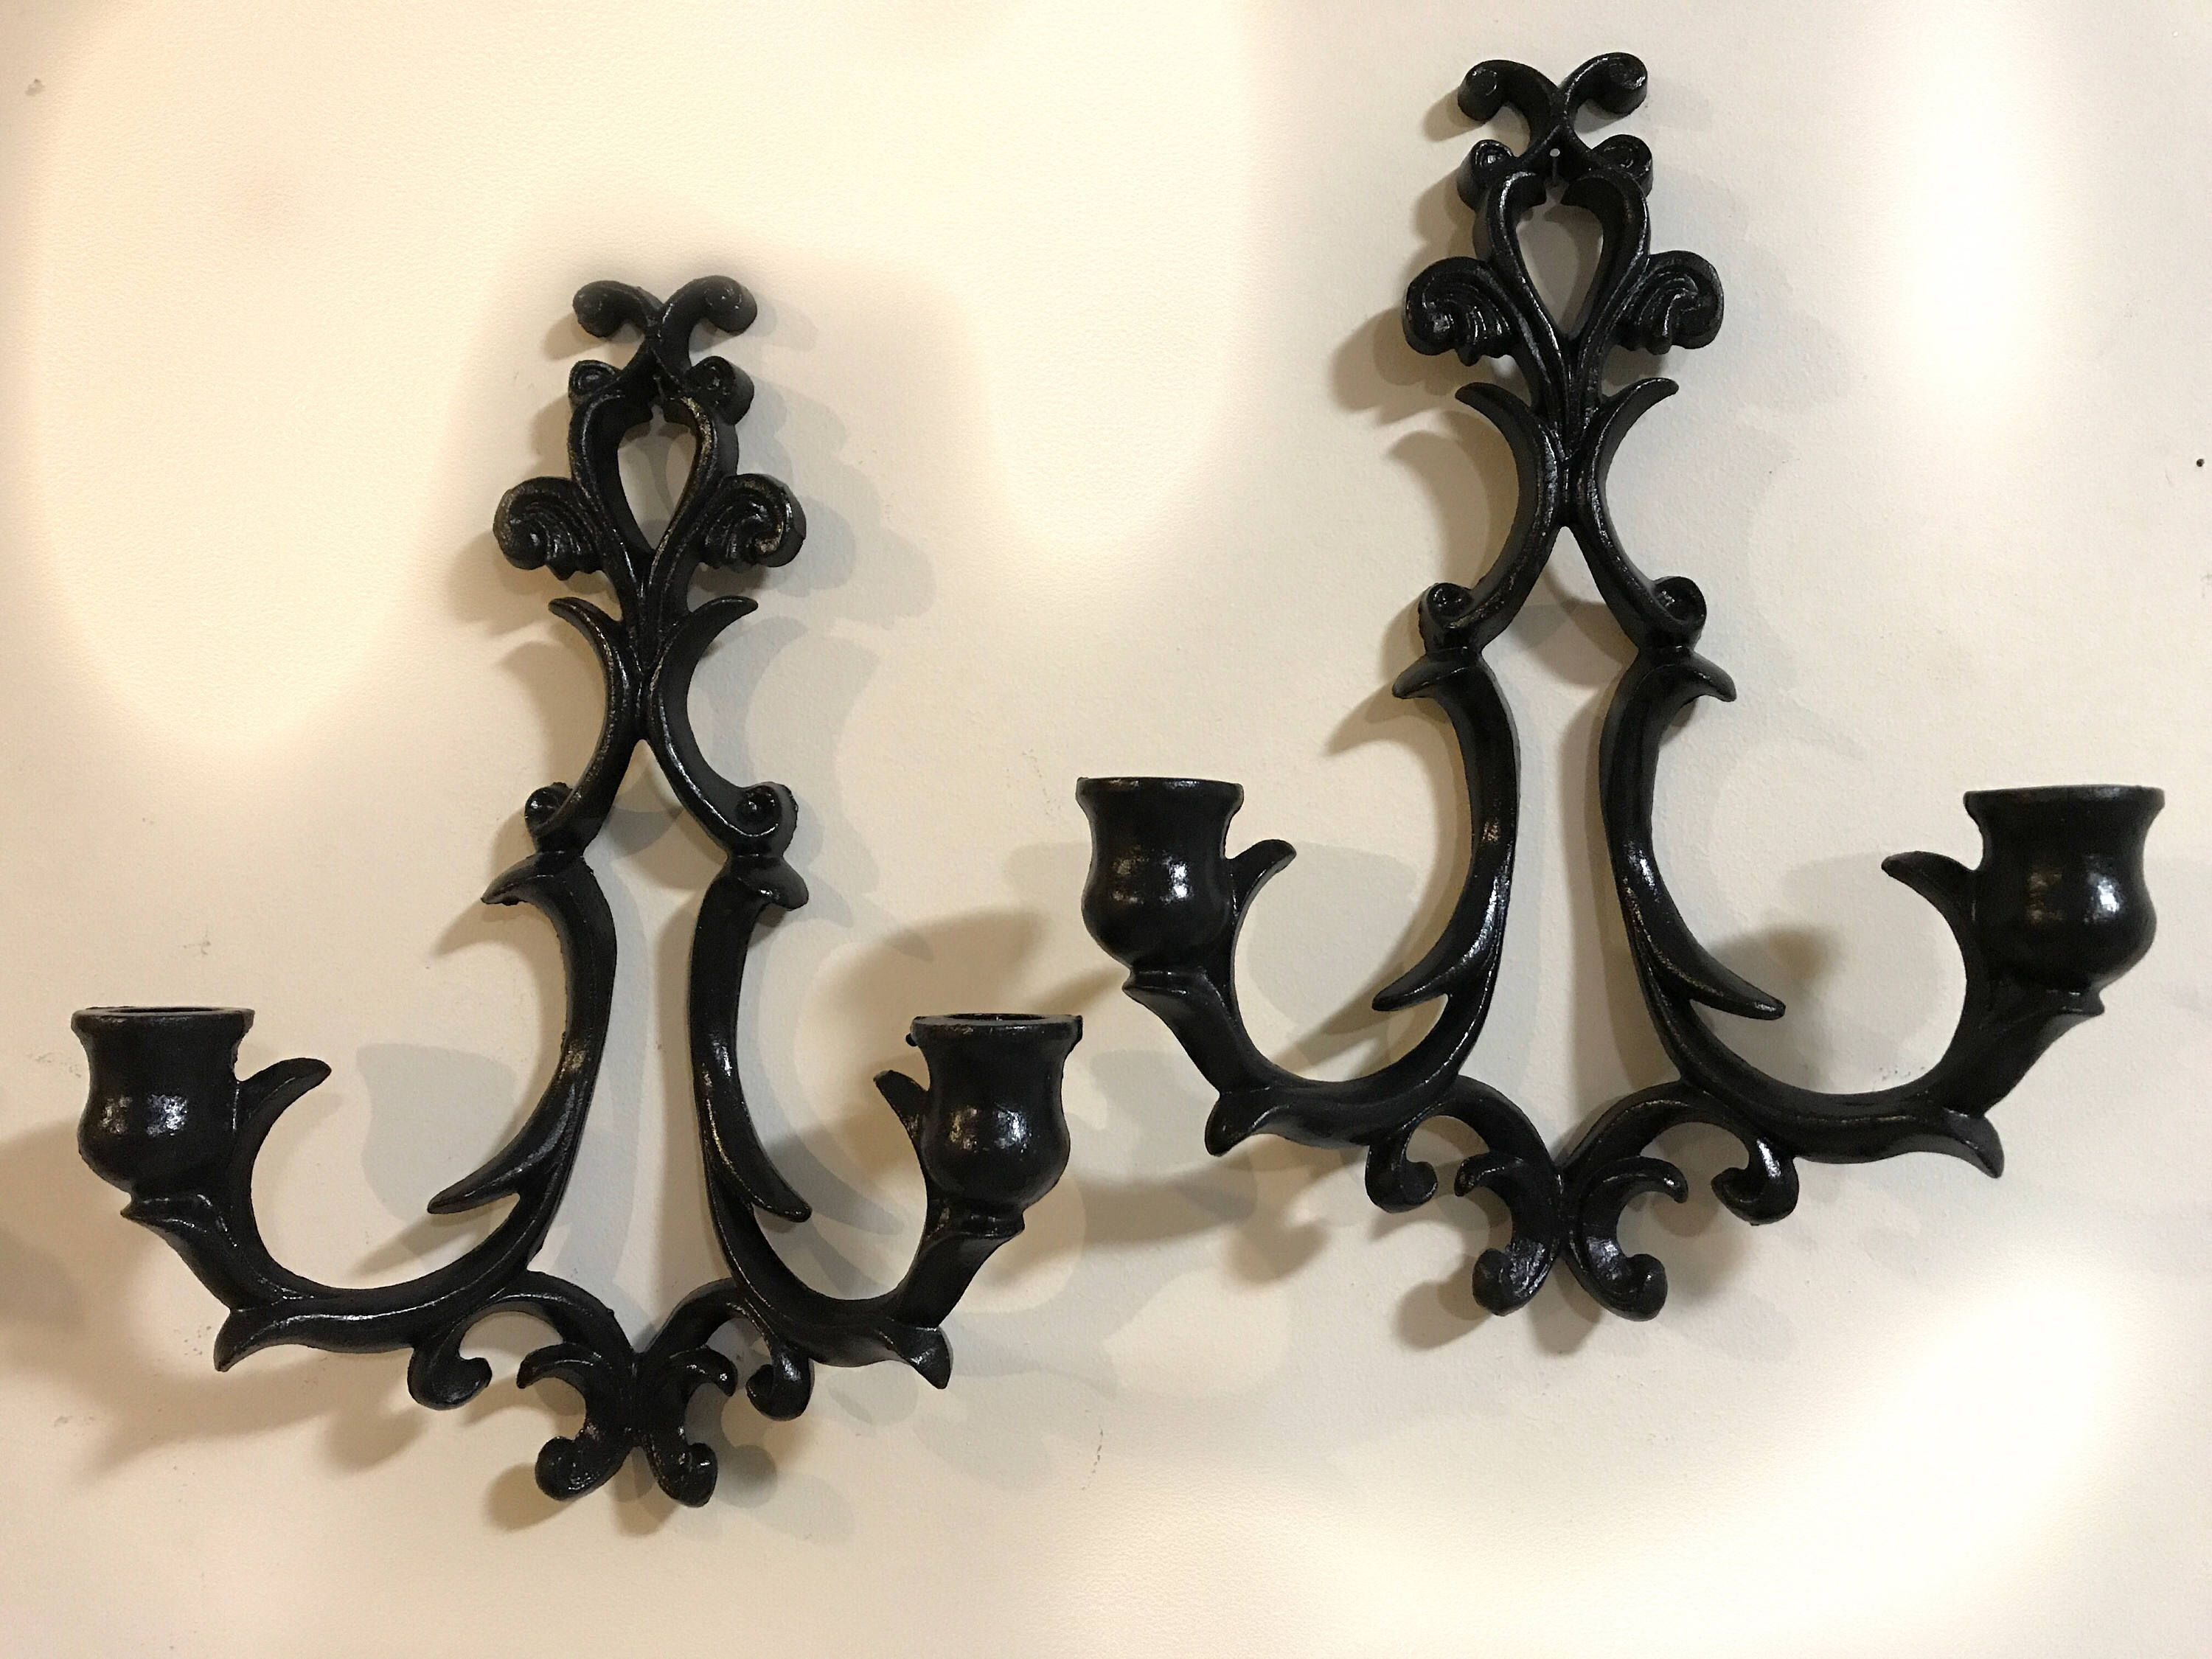 Black Cast Iron Wall Scoces Candle Holders By Wilton Vintage